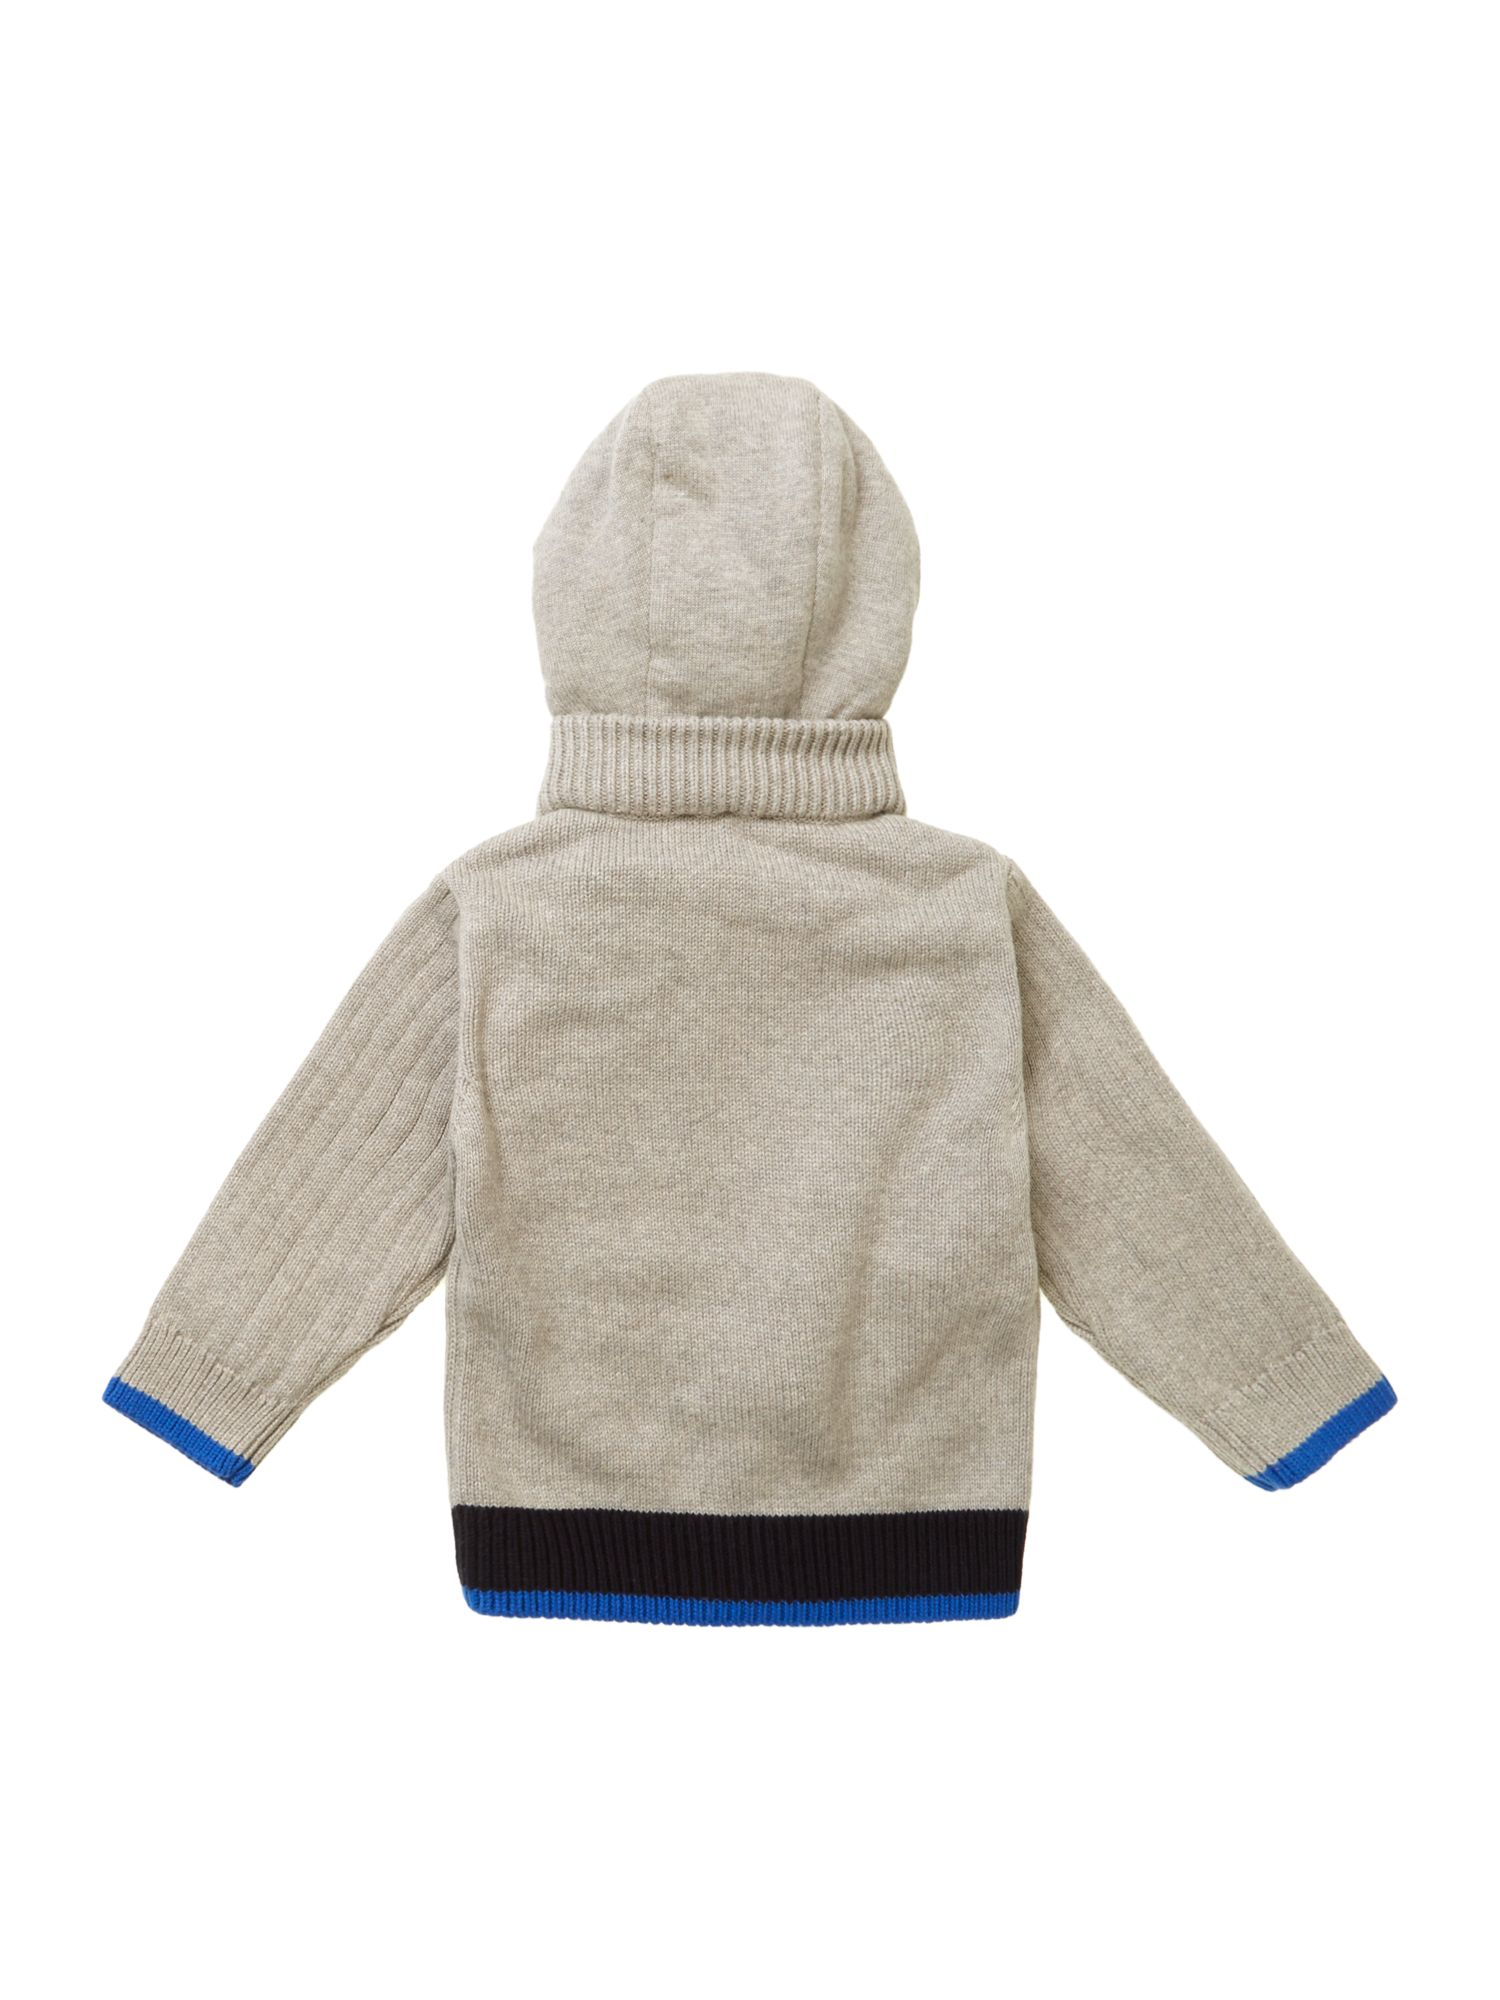 Toddler boy`s knitted cardigan